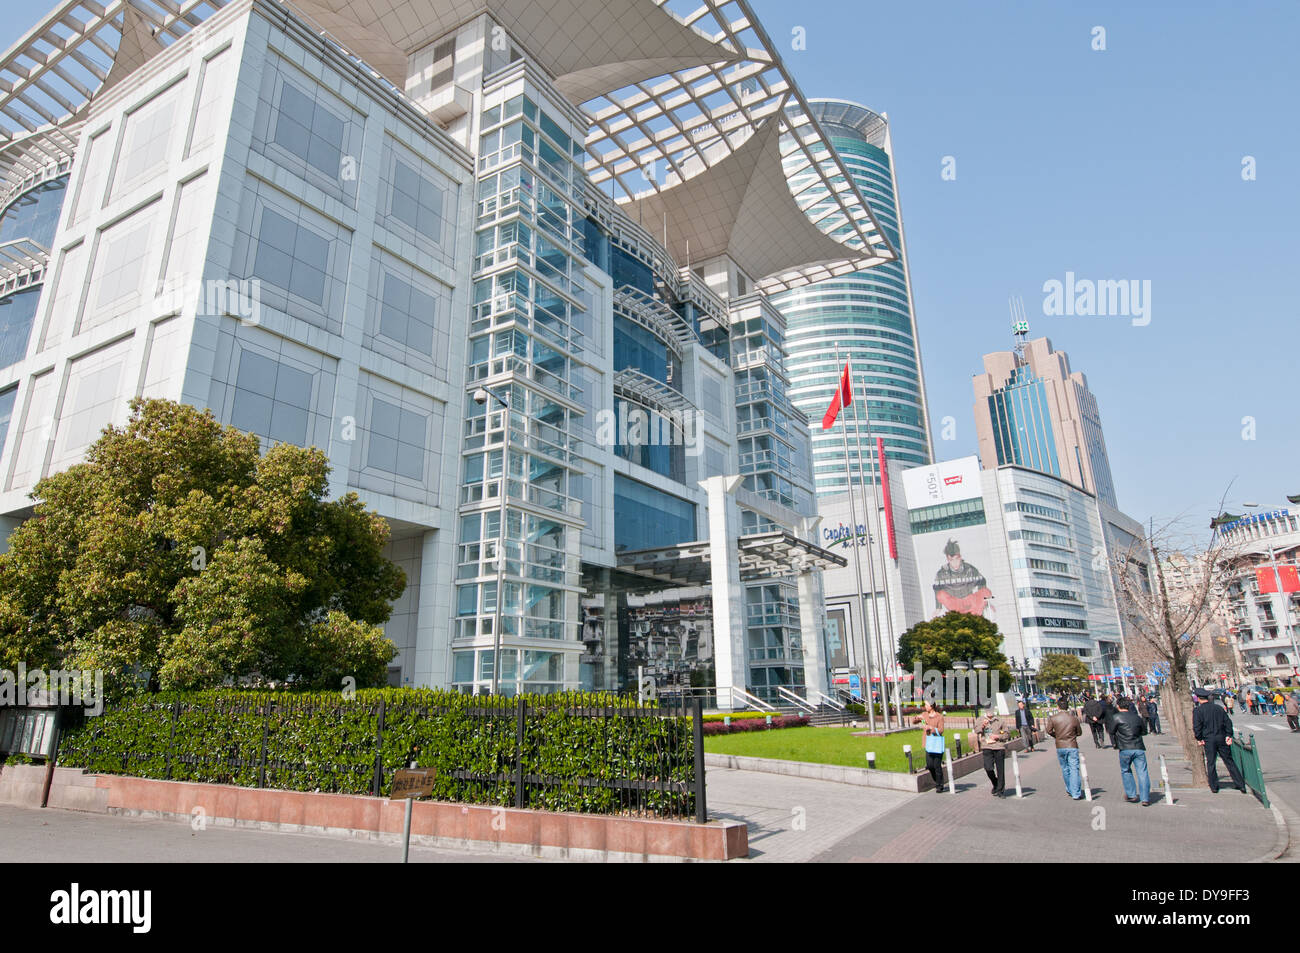 Shanghai Urban Planning Exhibition Center located on People's Square in Huangpu District, Shanghai, China - Stock Image